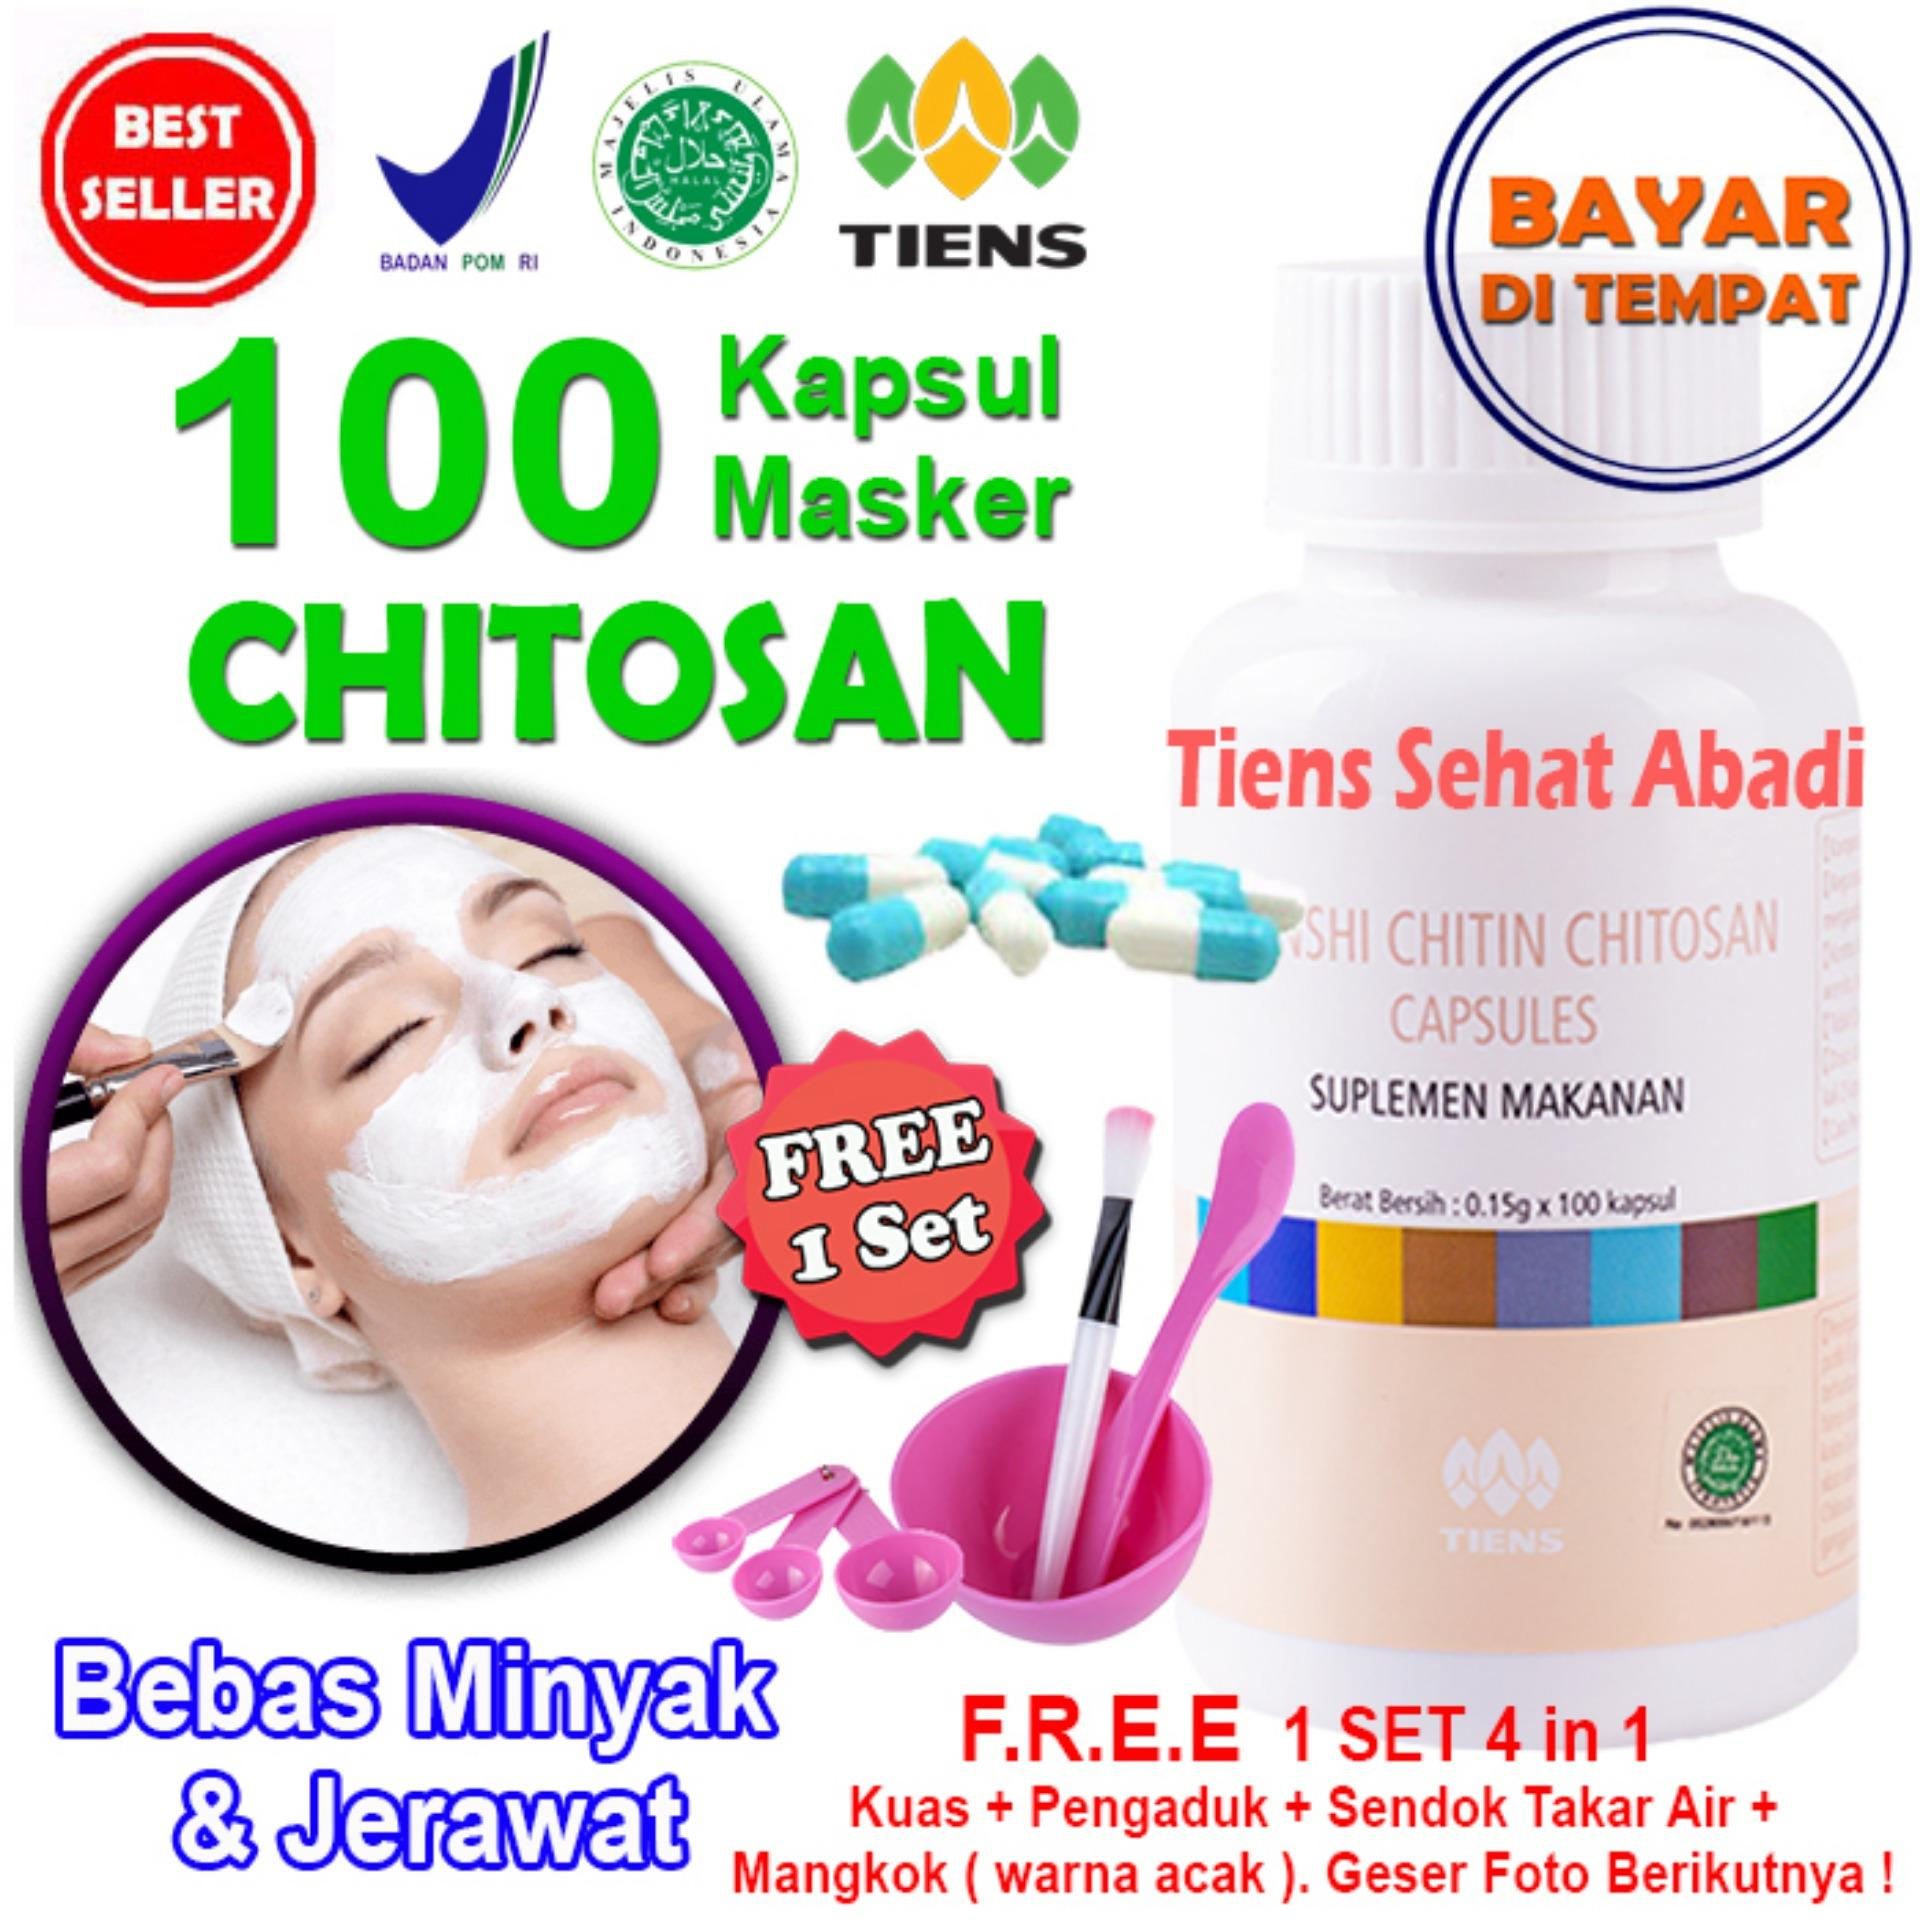 Masker TIENS Chitosan Herbal Anti Jerawat - isi 100 Kapsul | Acne cream | Acnes uv tint | Acnes creamy wash | Acnes foaming wash | Acnes point clear | Obat jerawat ampuh | Obat jerawat alami | Obat jerawat herbal |